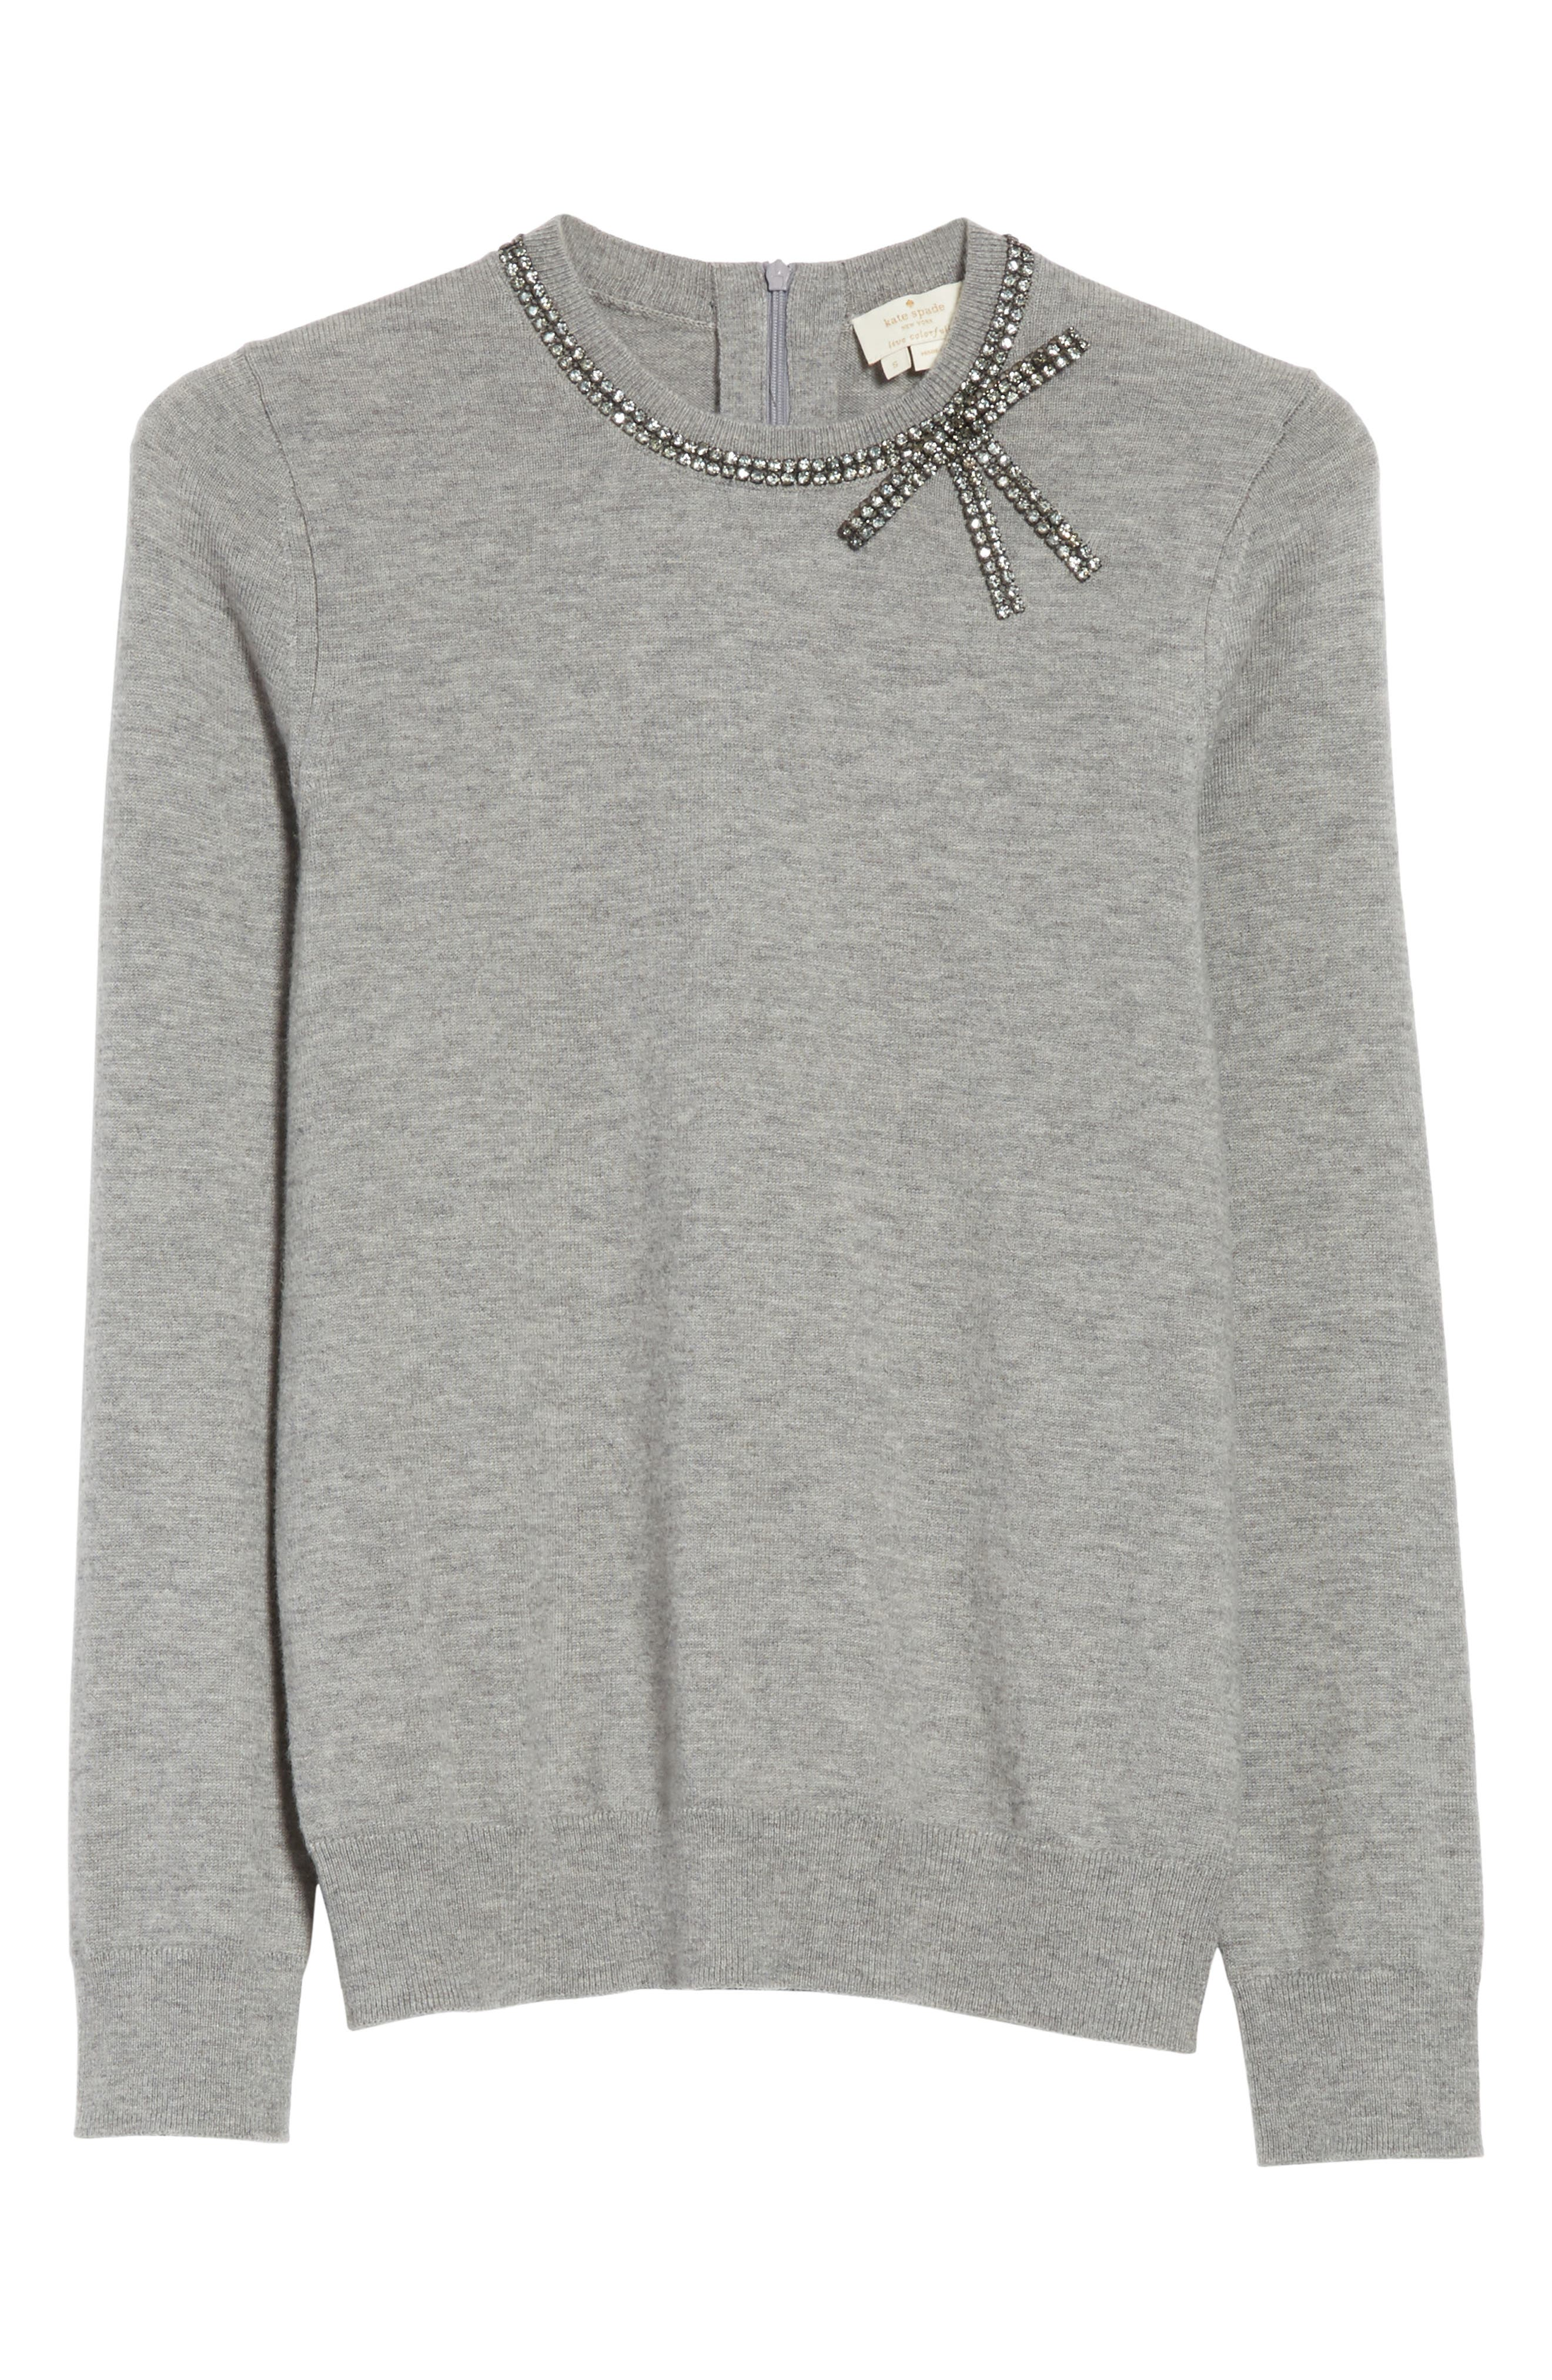 kate spade new york bow embellished sweater